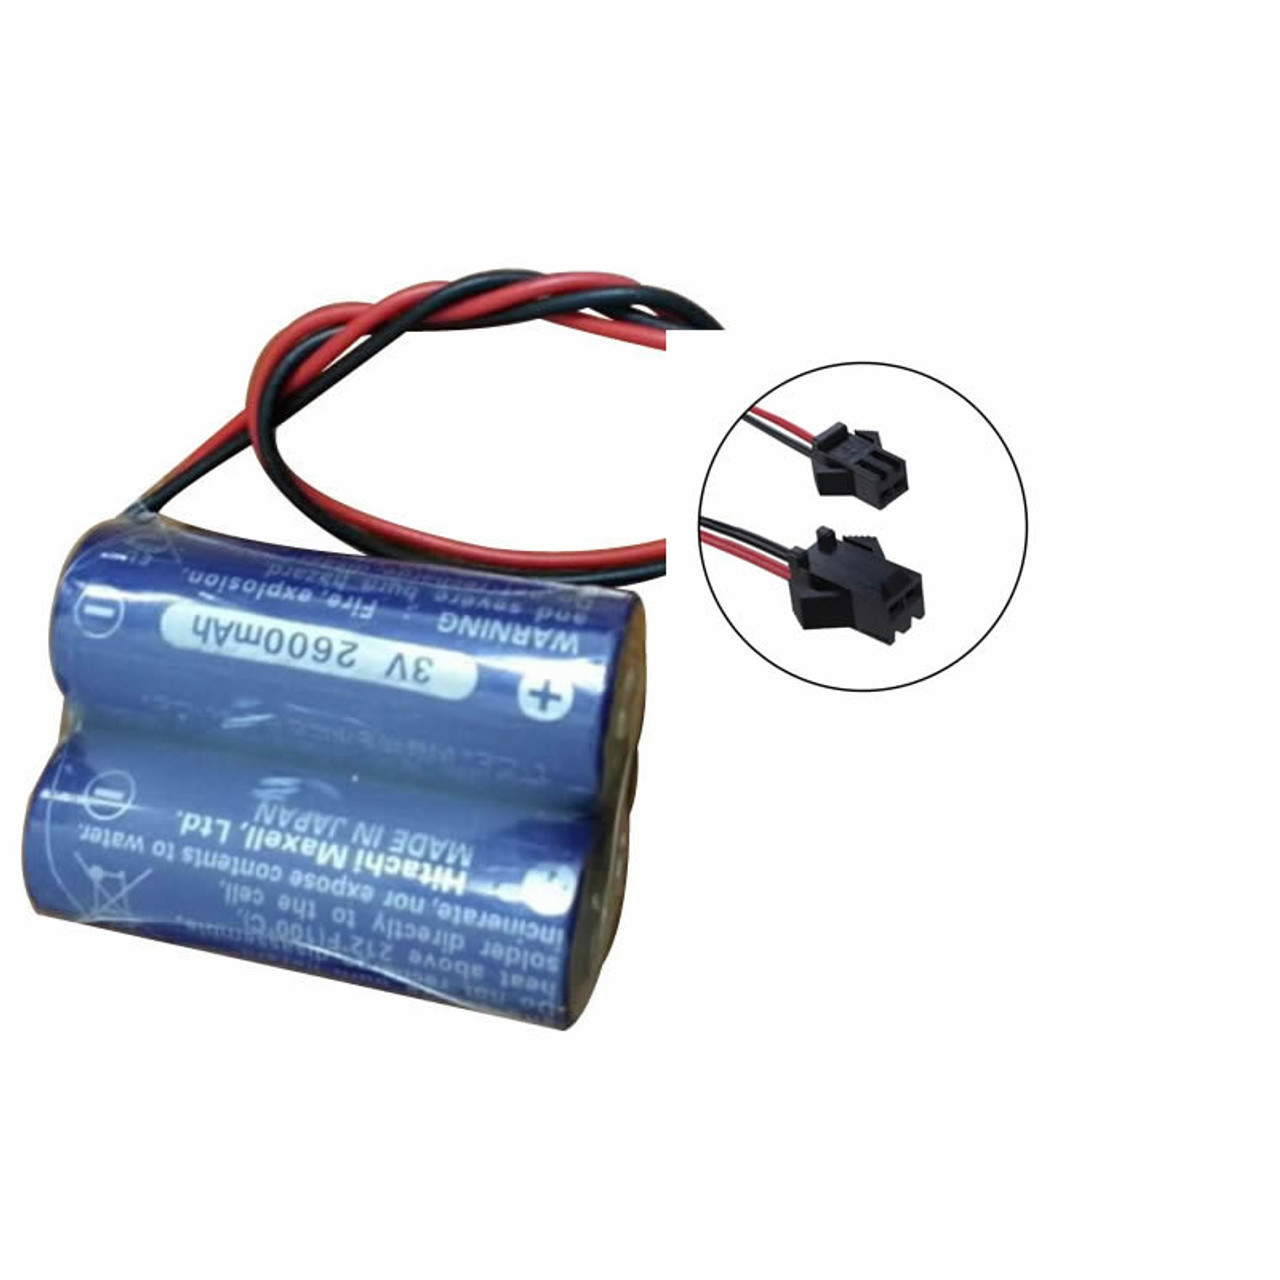 Maxell 2CR17450 Battery CR17450 (3V) Hitachi with RD051 Connector